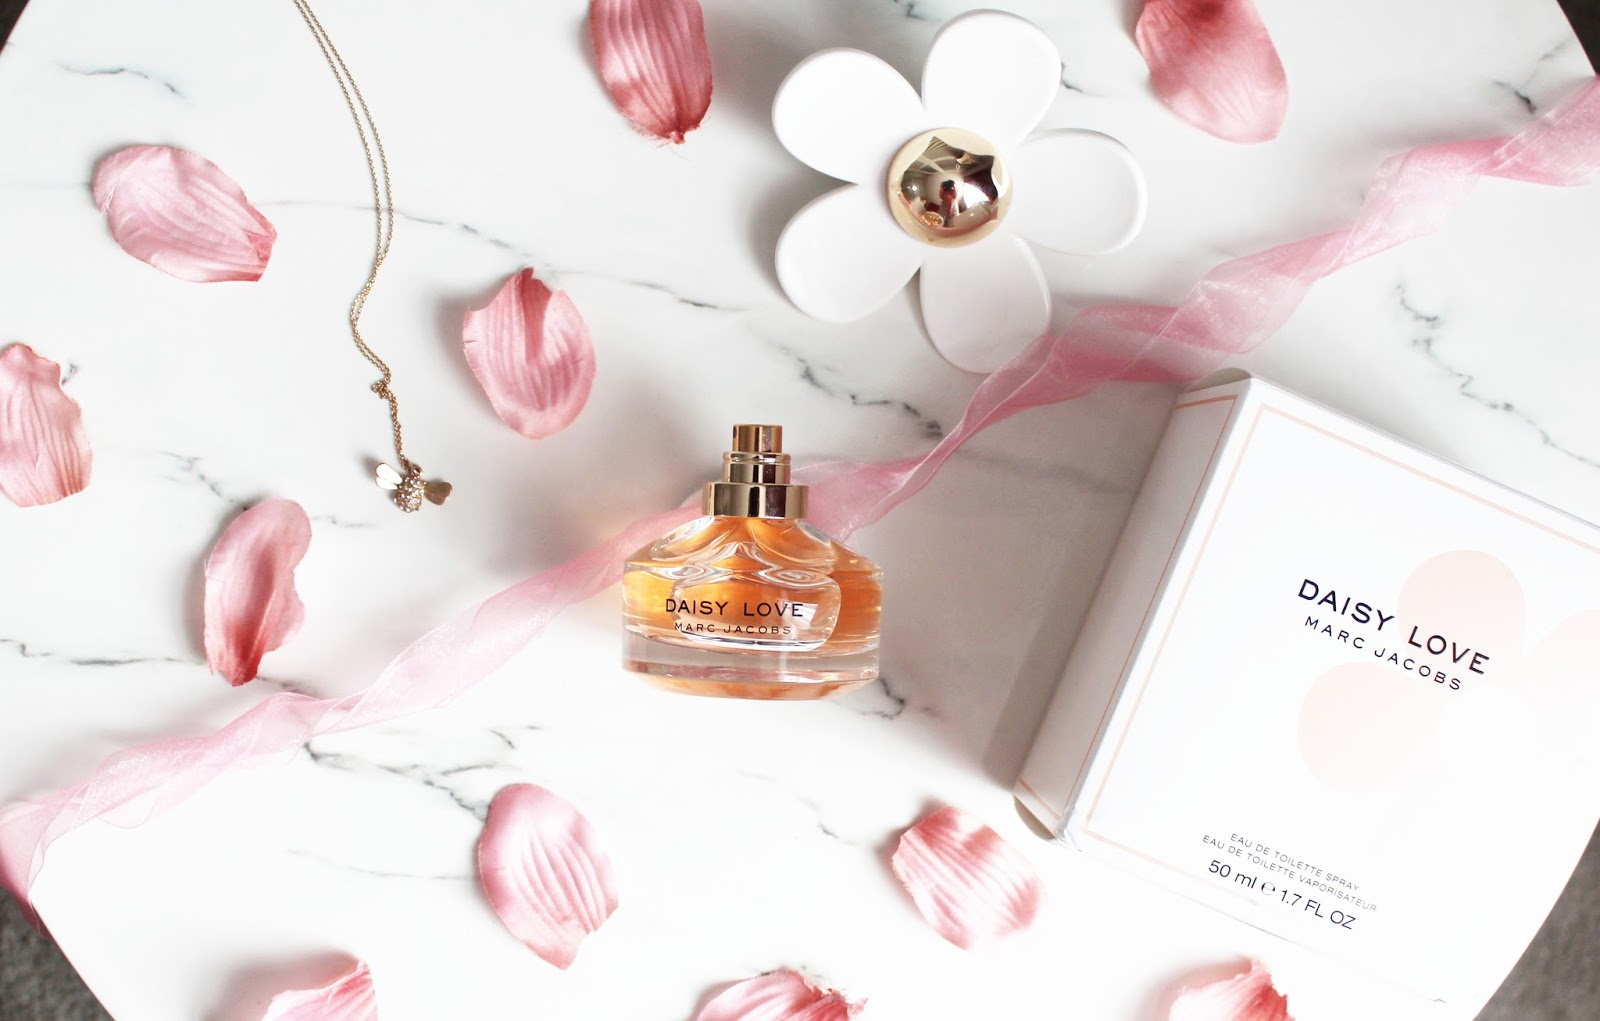 Daisy love the new fragrance by marc jacobs dayna marie beauty daisy love the new fragrance by marc jacobs izmirmasajfo Image collections